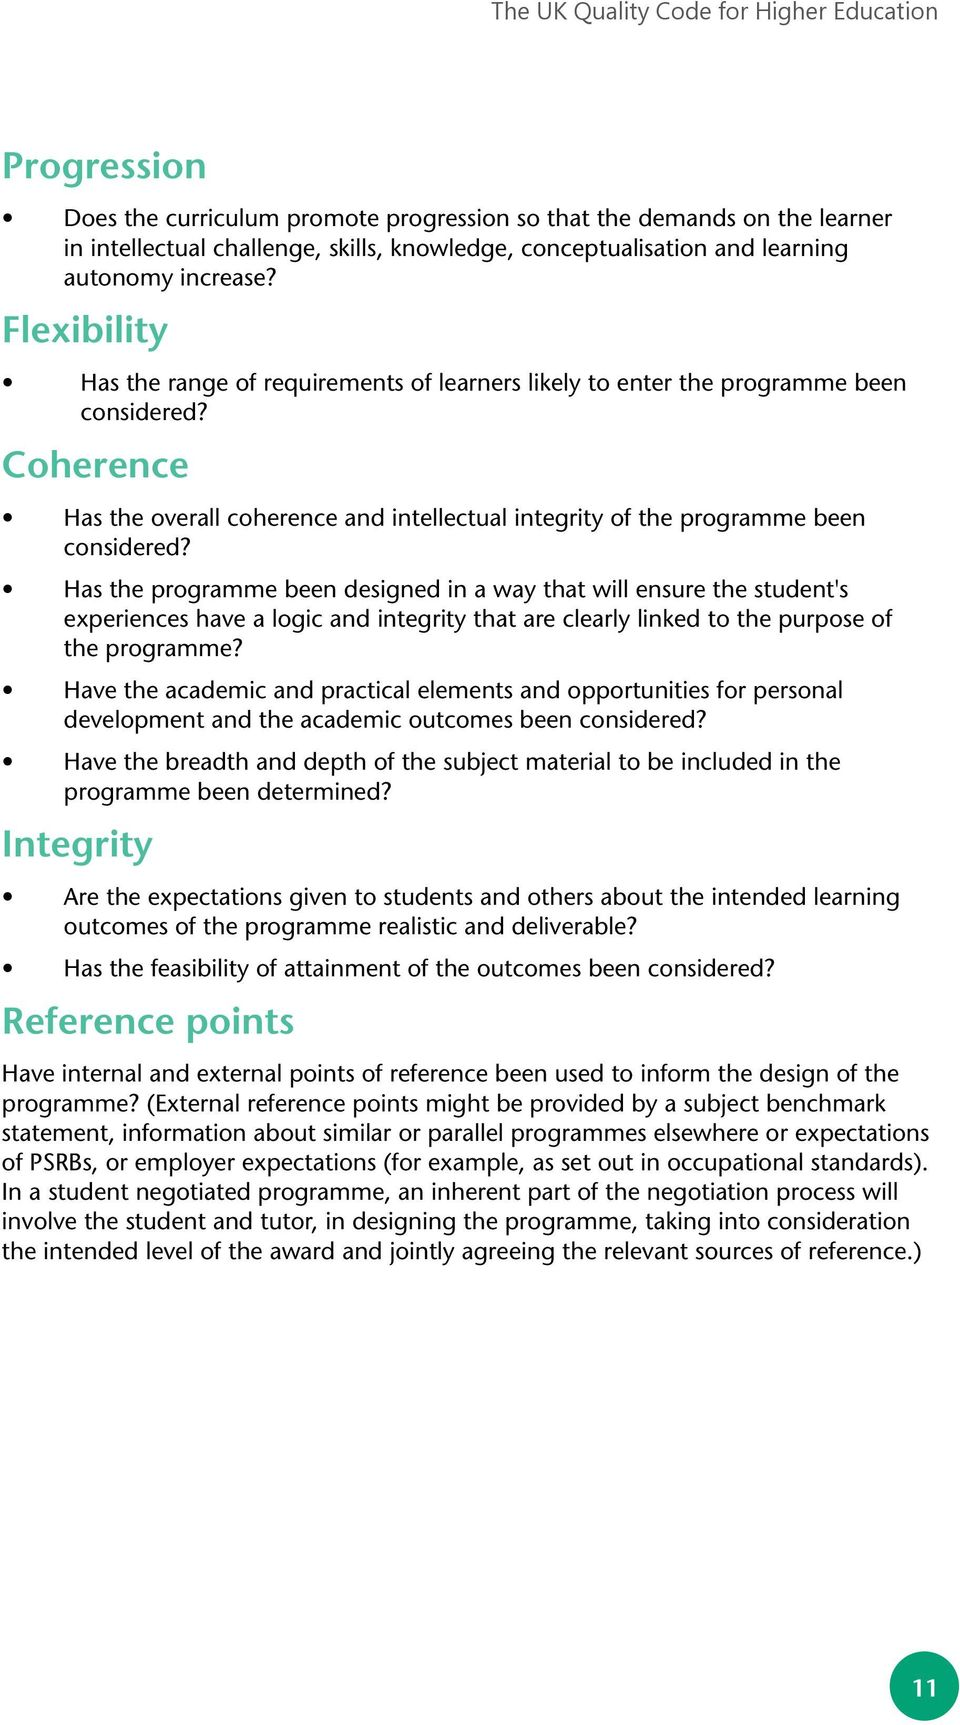 Coherence Has the overall coherence and intellectual integrity of the programme been considered?